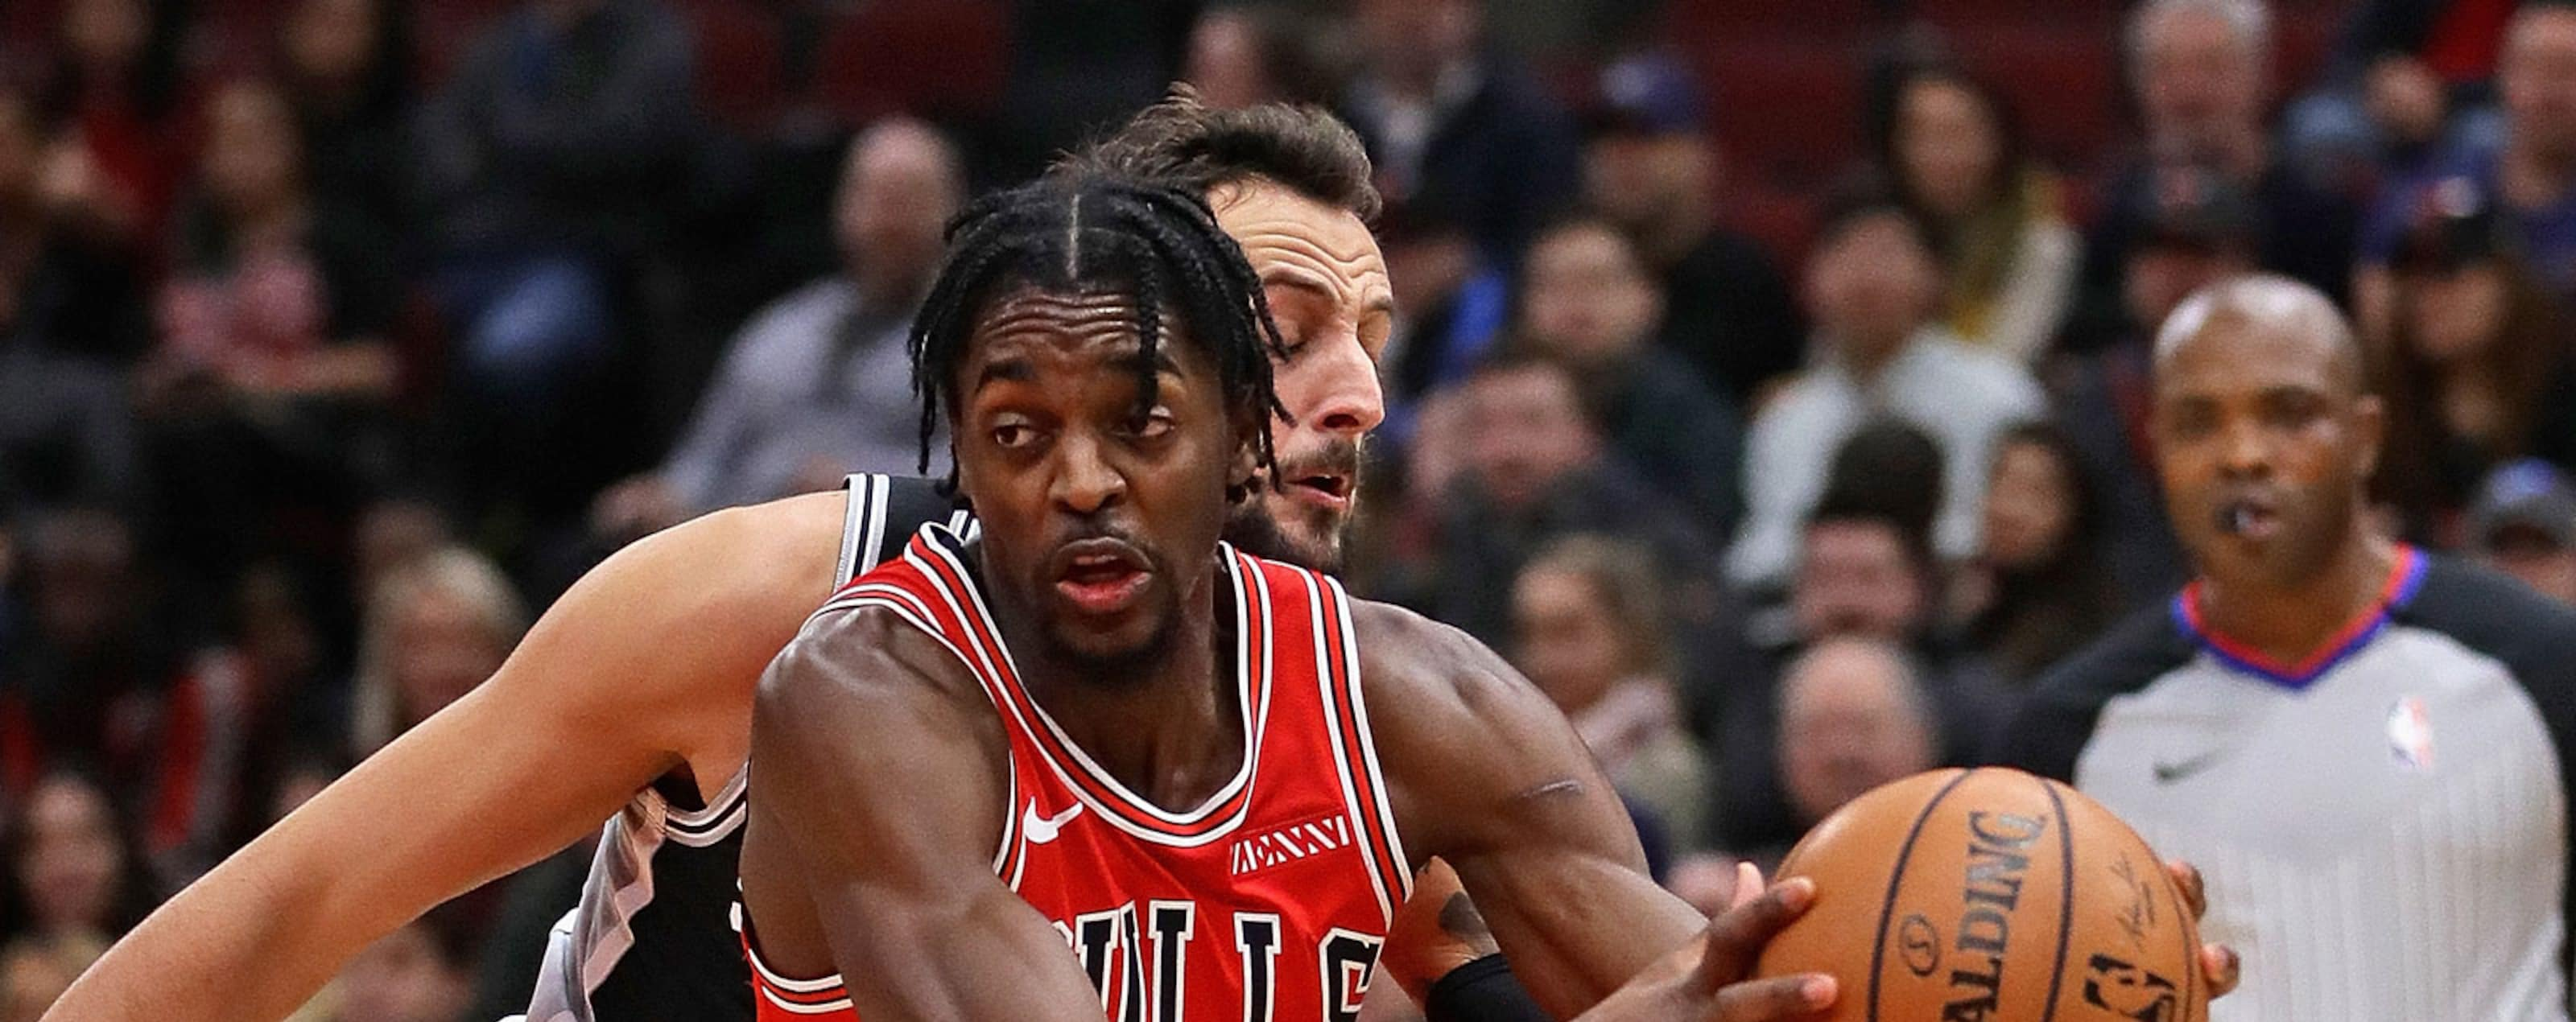 Justin Holiday #7 of the Chicago Bulls drives past Marco Belinelli #18 of the San Antonio Spurs at the United Center on November 26, 2018 in Chicago, Illinois.